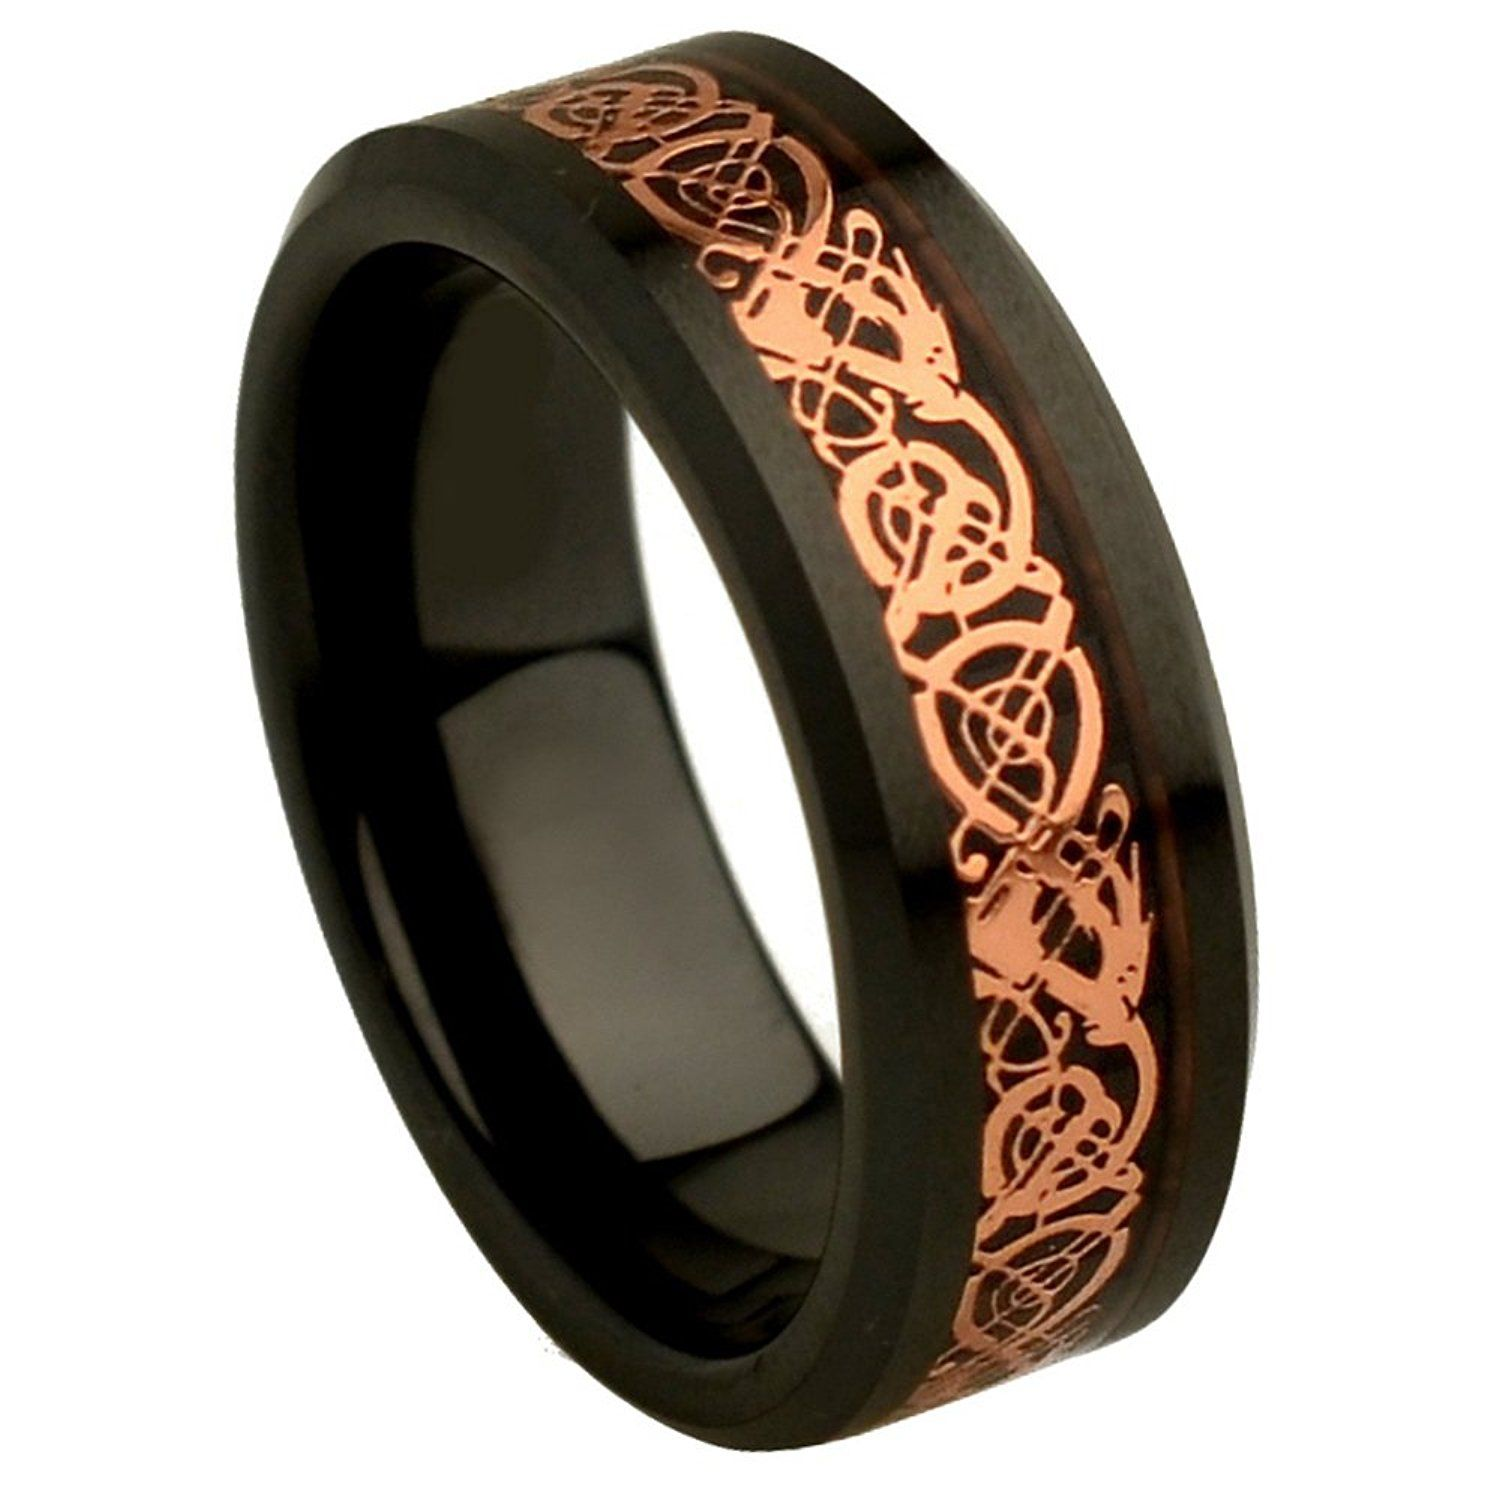 8mm high polish finish pink rose gold tribal dragon inlay beveled